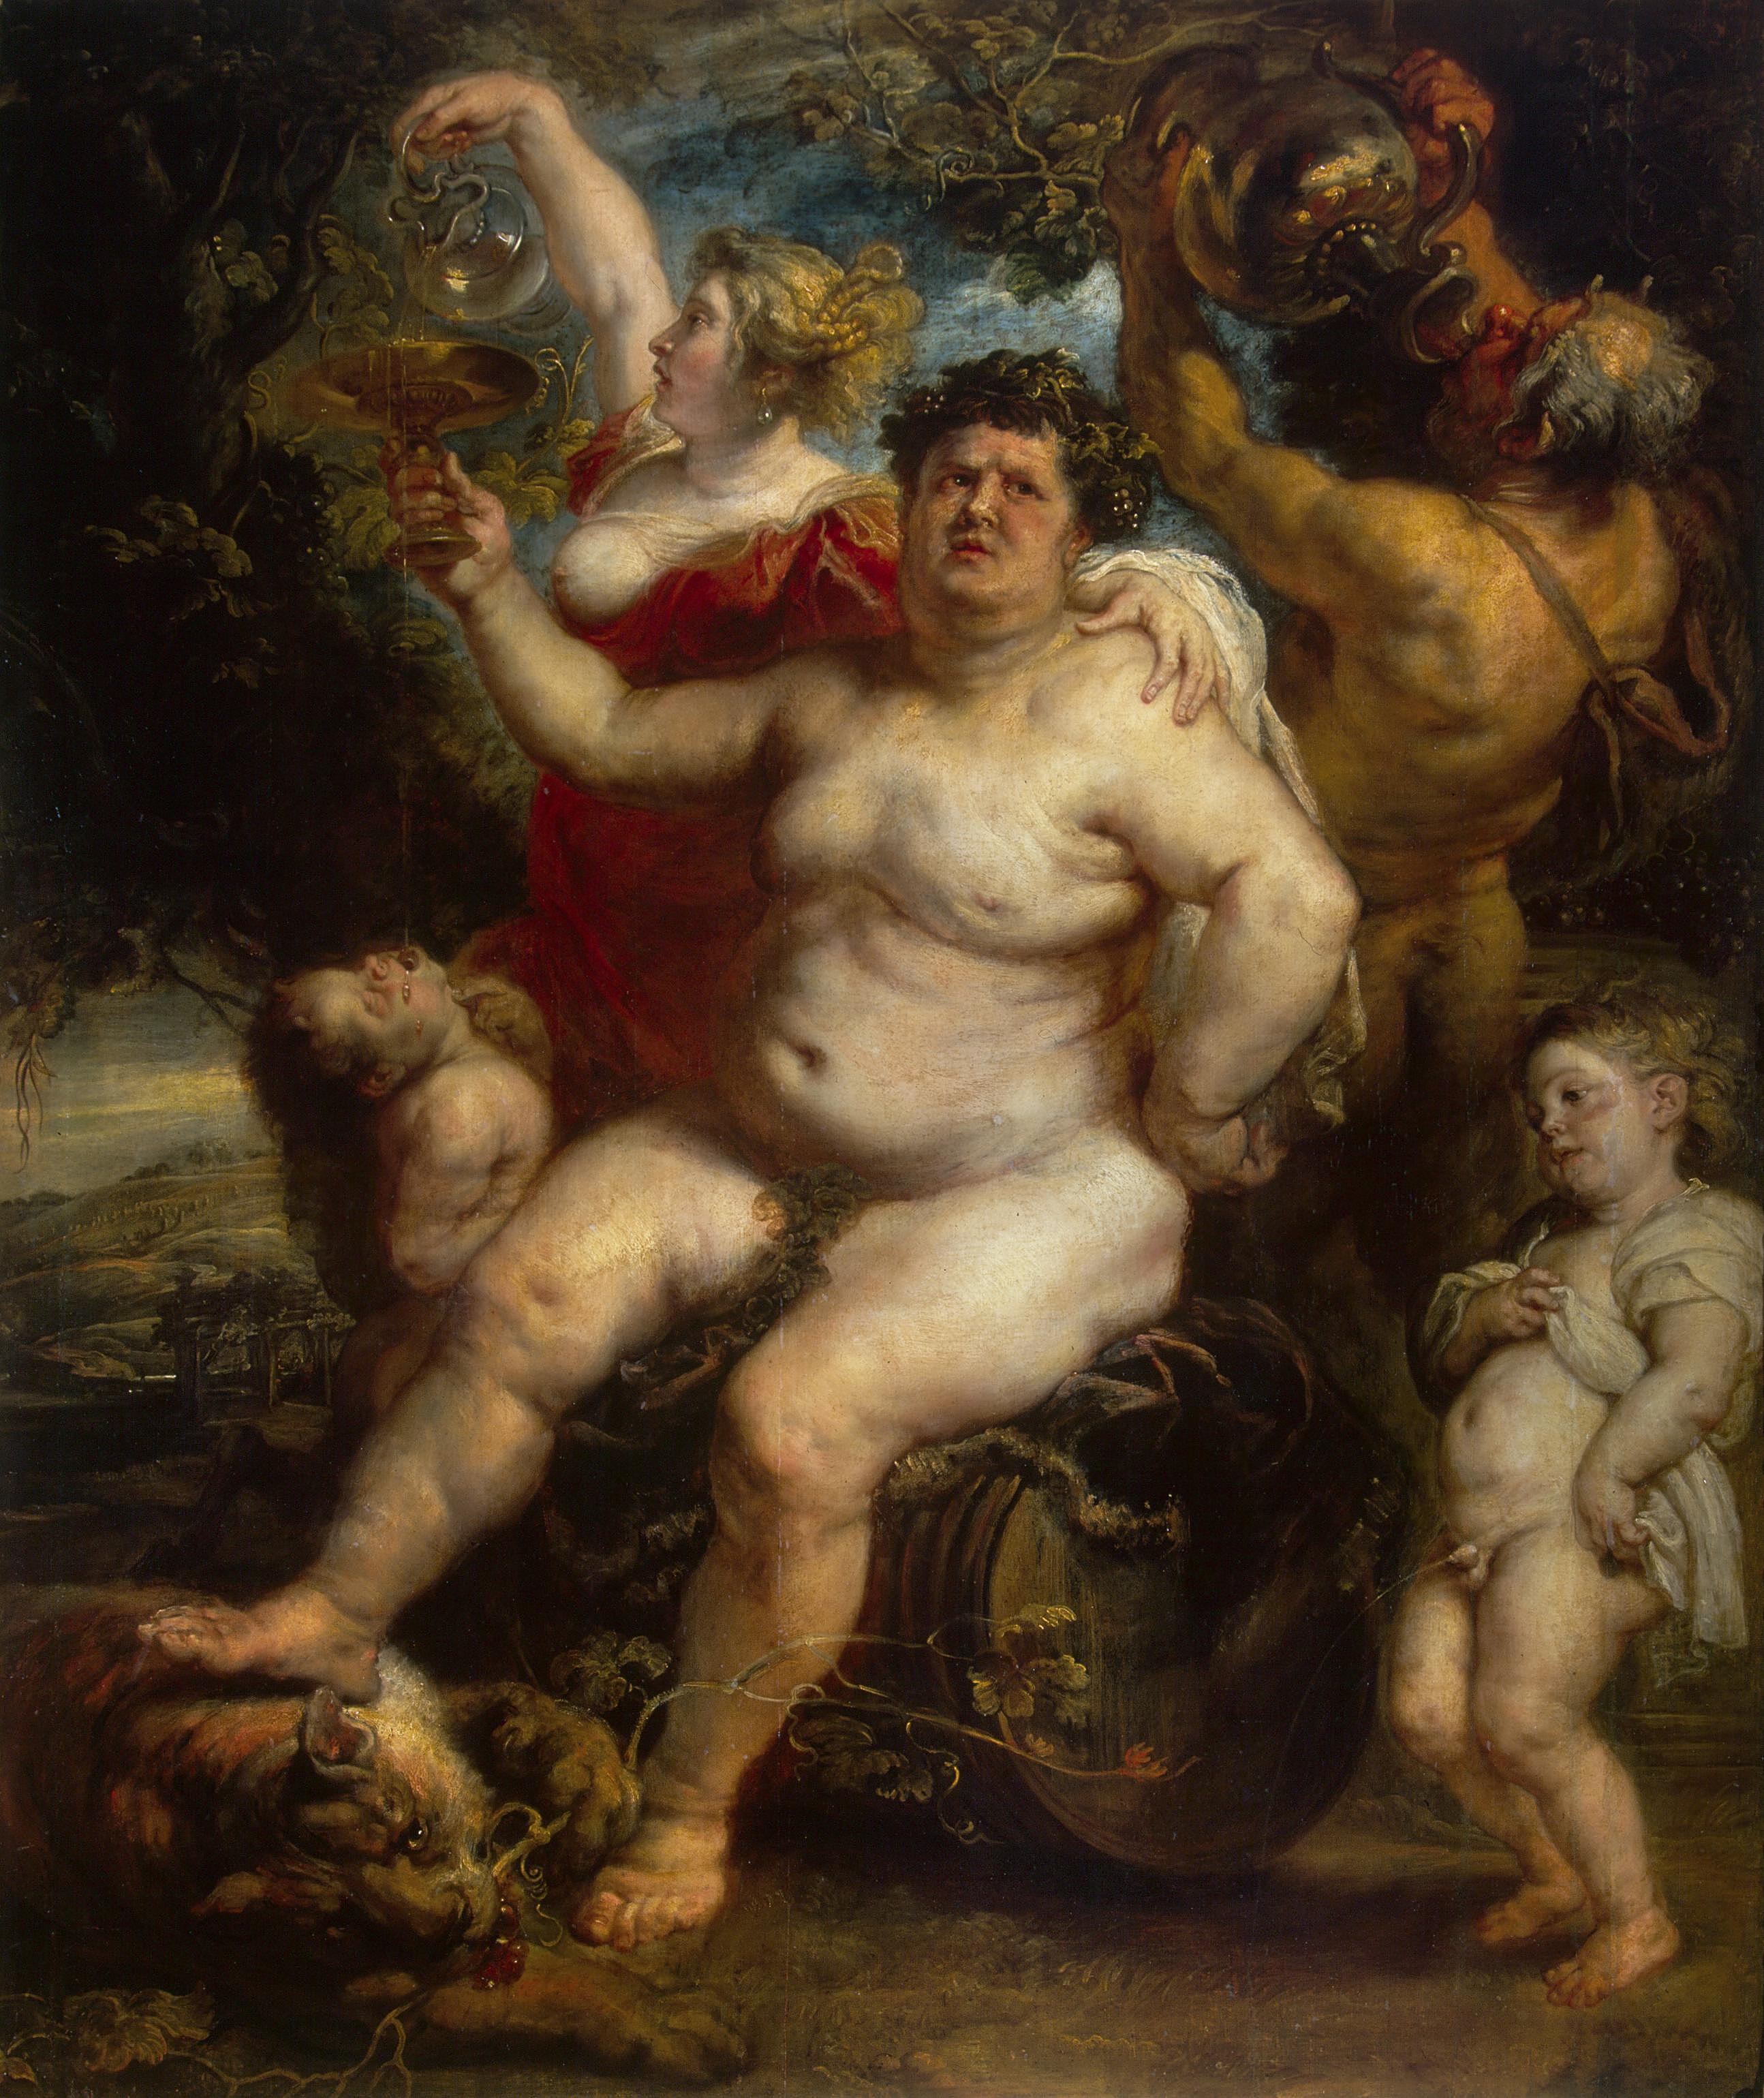 https://upload.wikimedia.org/wikipedia/commons/e/ee/Bacchus.jpg